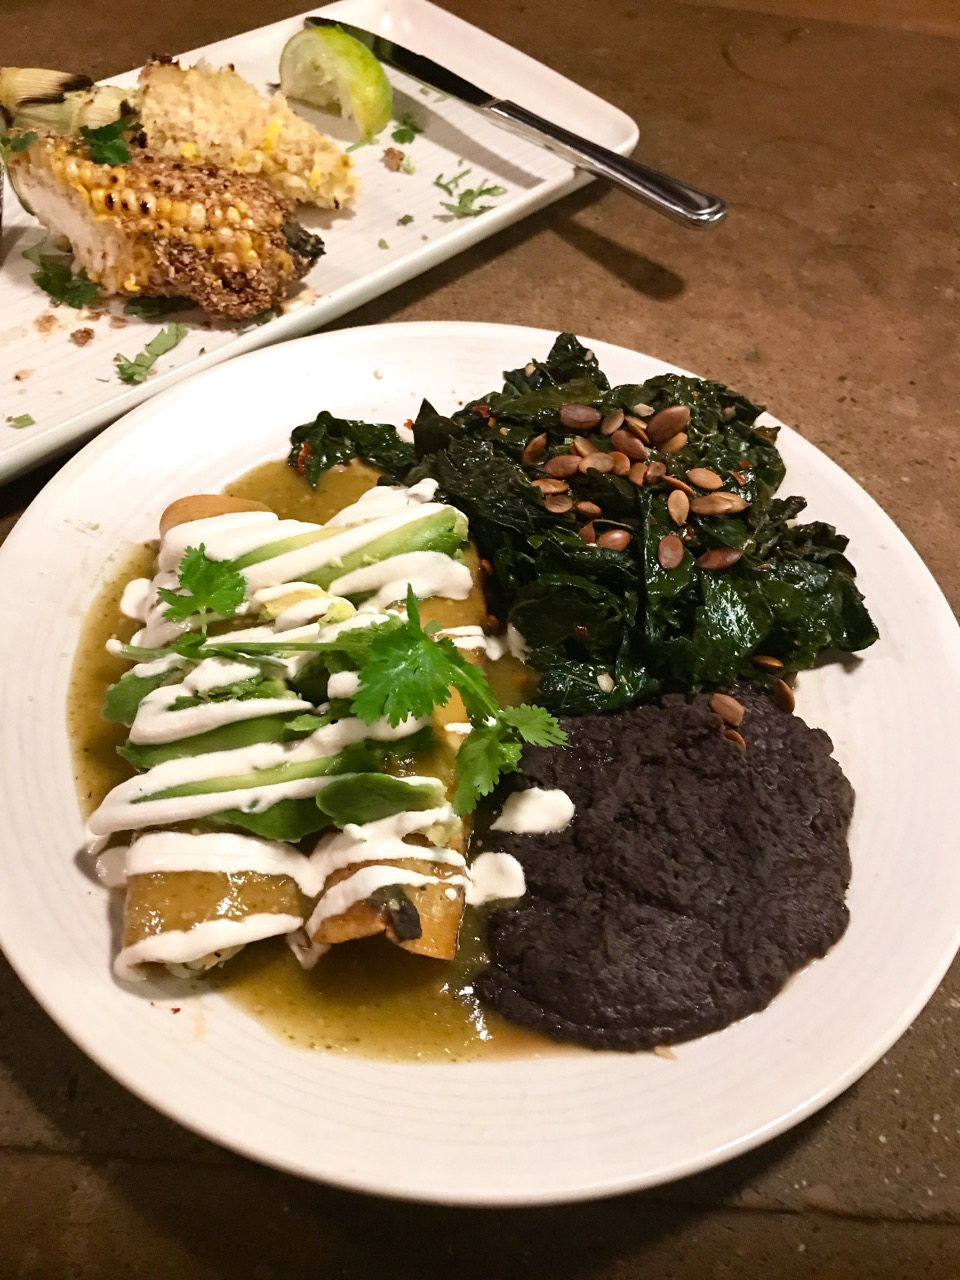 Enchiladas Verdes at Gracias Madre vegan restaurant in the San Francisco Mission District.  Tortillas filled with potato, zucchini and peas topped with tomatillo salsa, nut-based crema and avocado. Served with sautéed greens and beans.